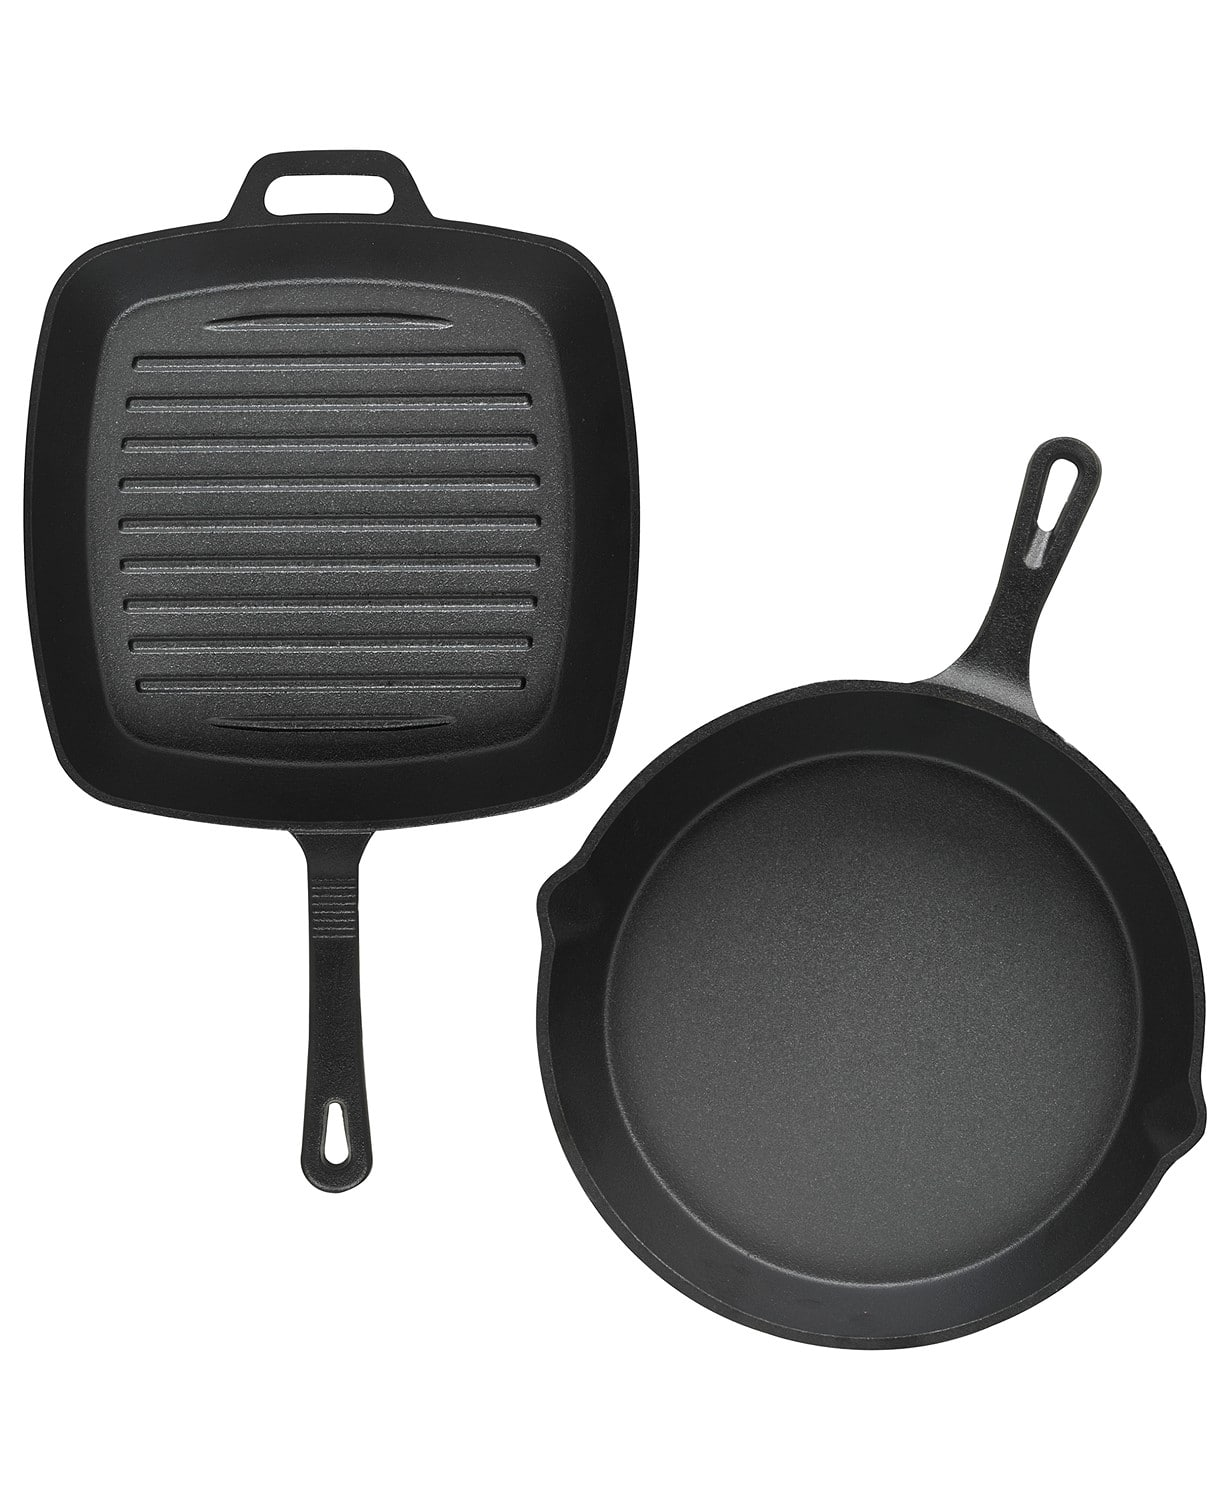 "Cast Iron Cookware: 10"" Skillet & 10"" Square Grill Set $14, Bacon Press & 10.25"" Grill Set $14 at Macy's (in-store pickup available)"